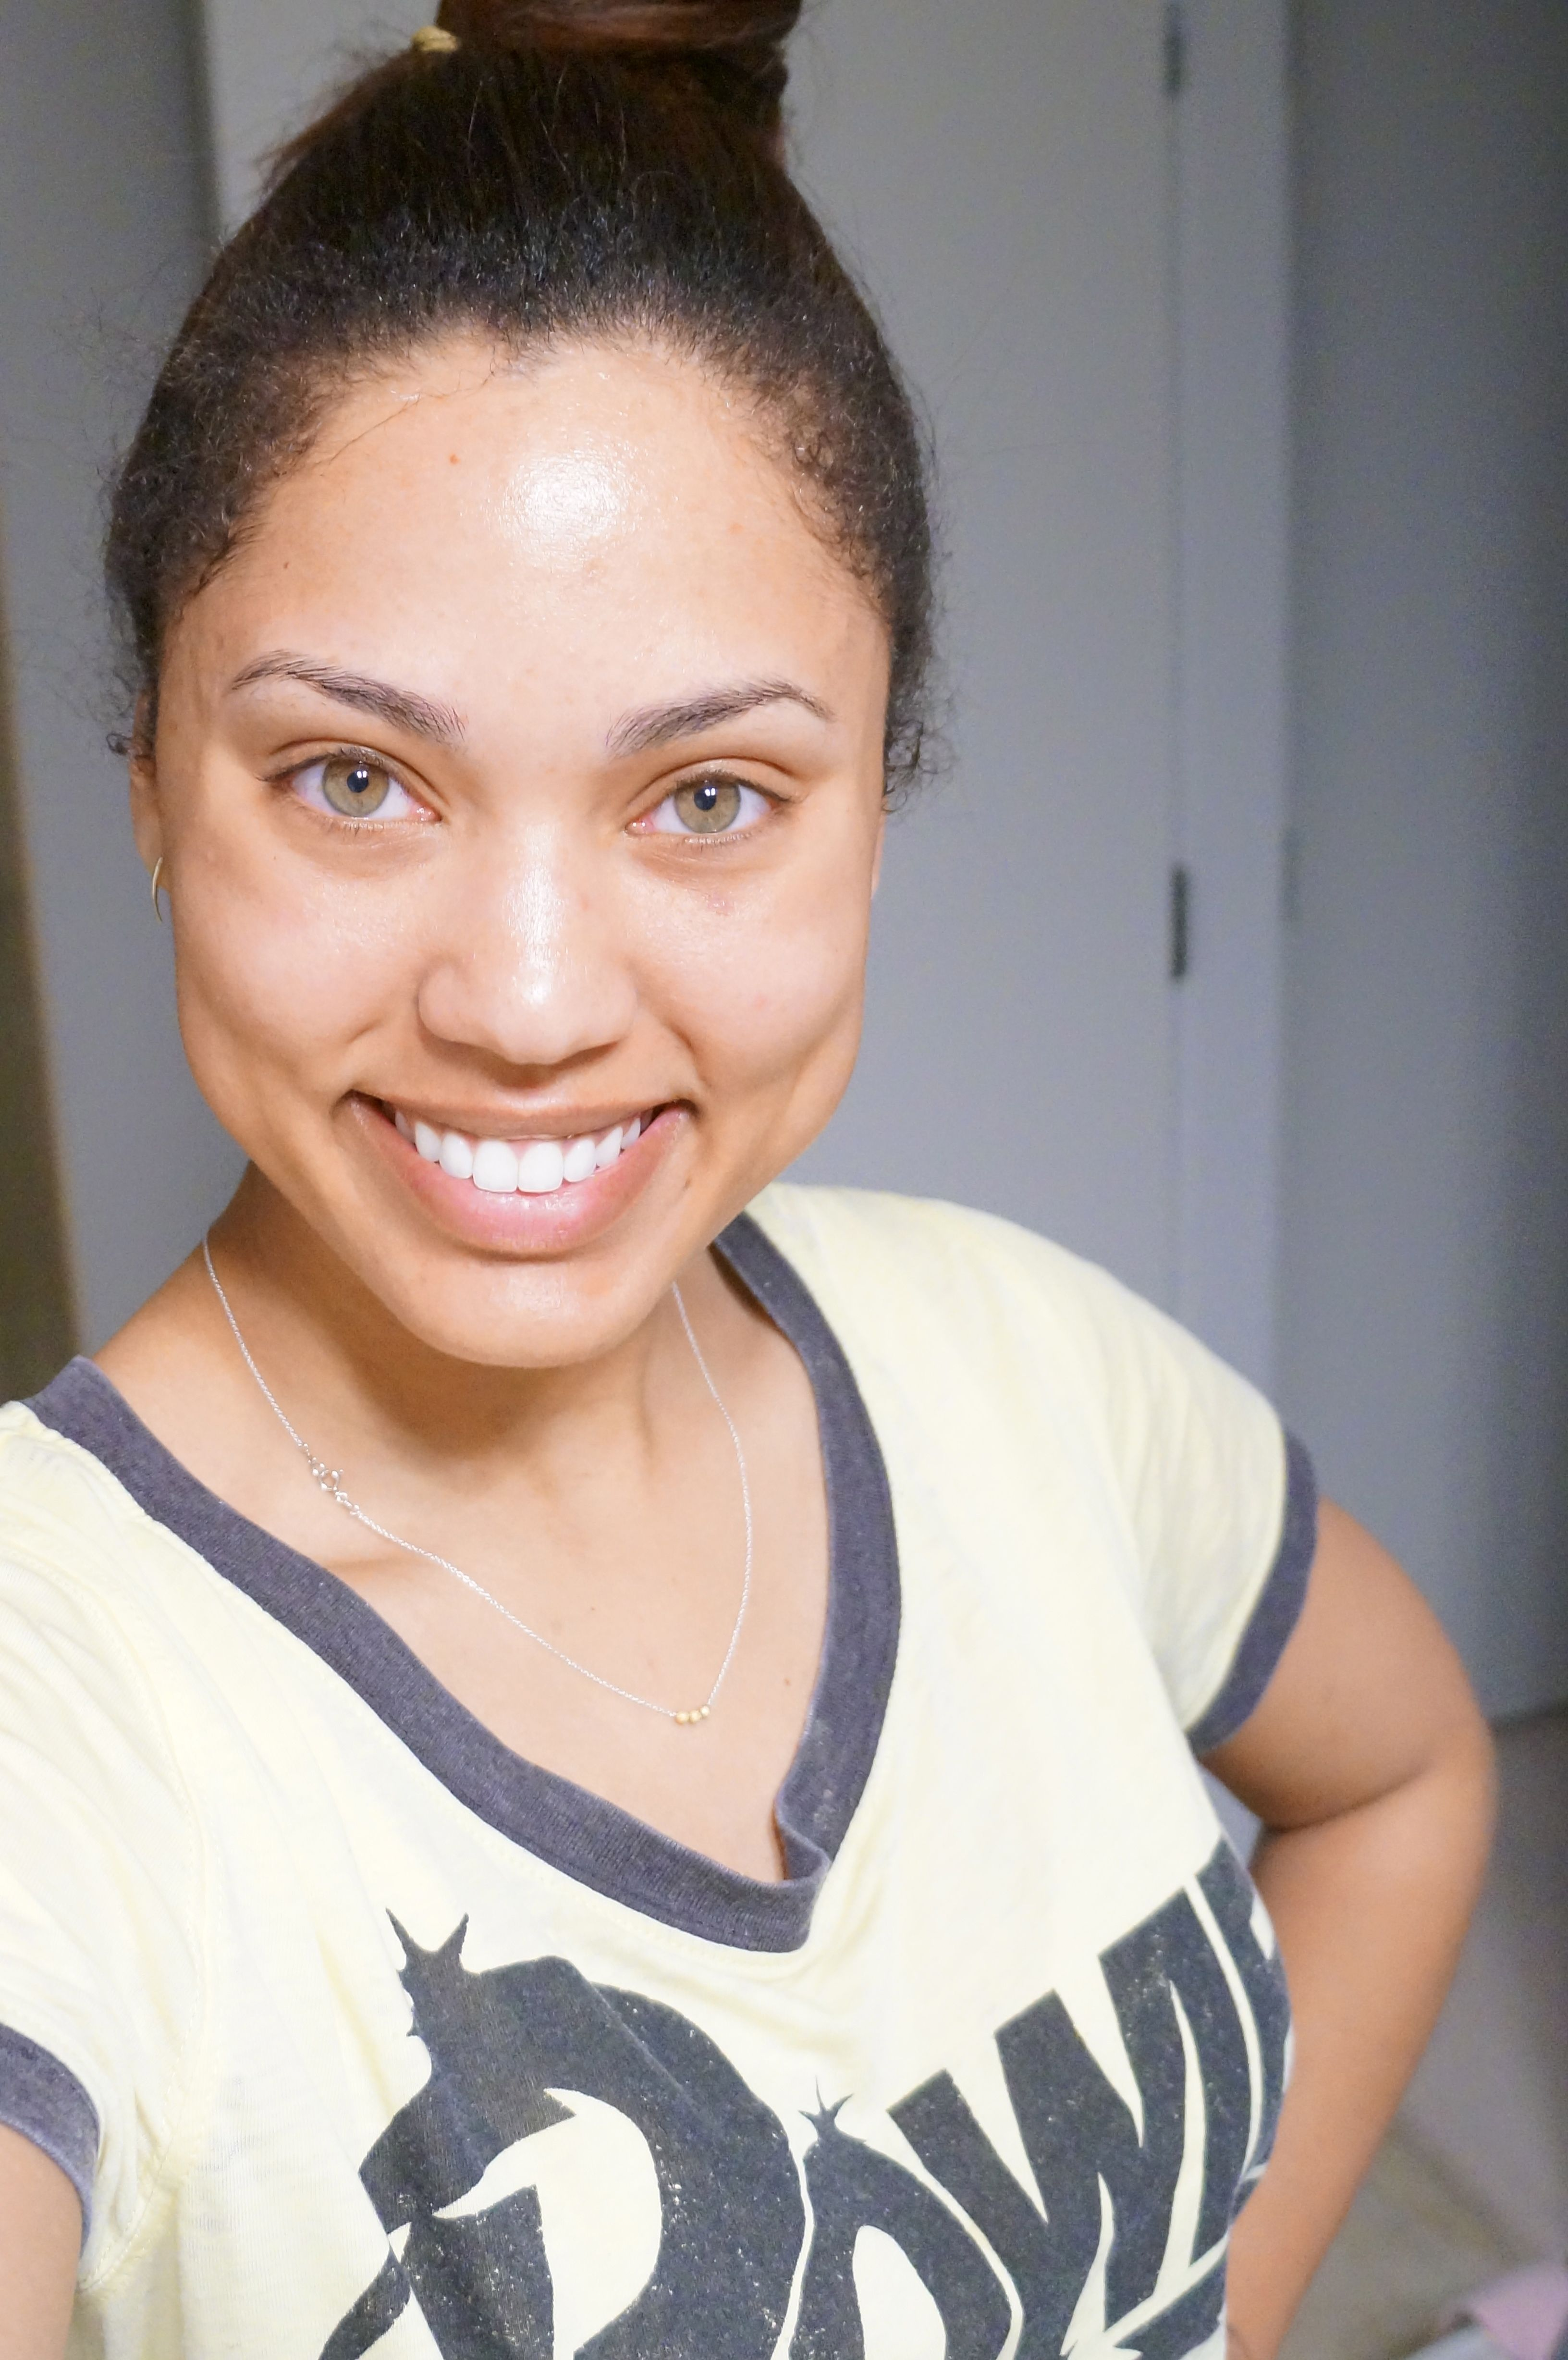 Ayesha Curry No Makeup Chill Hip Hop Showcased Shop For This Look At Chillandhiphop Com Woman Crush Everyday Beautiful Natural Hair The Curry Family